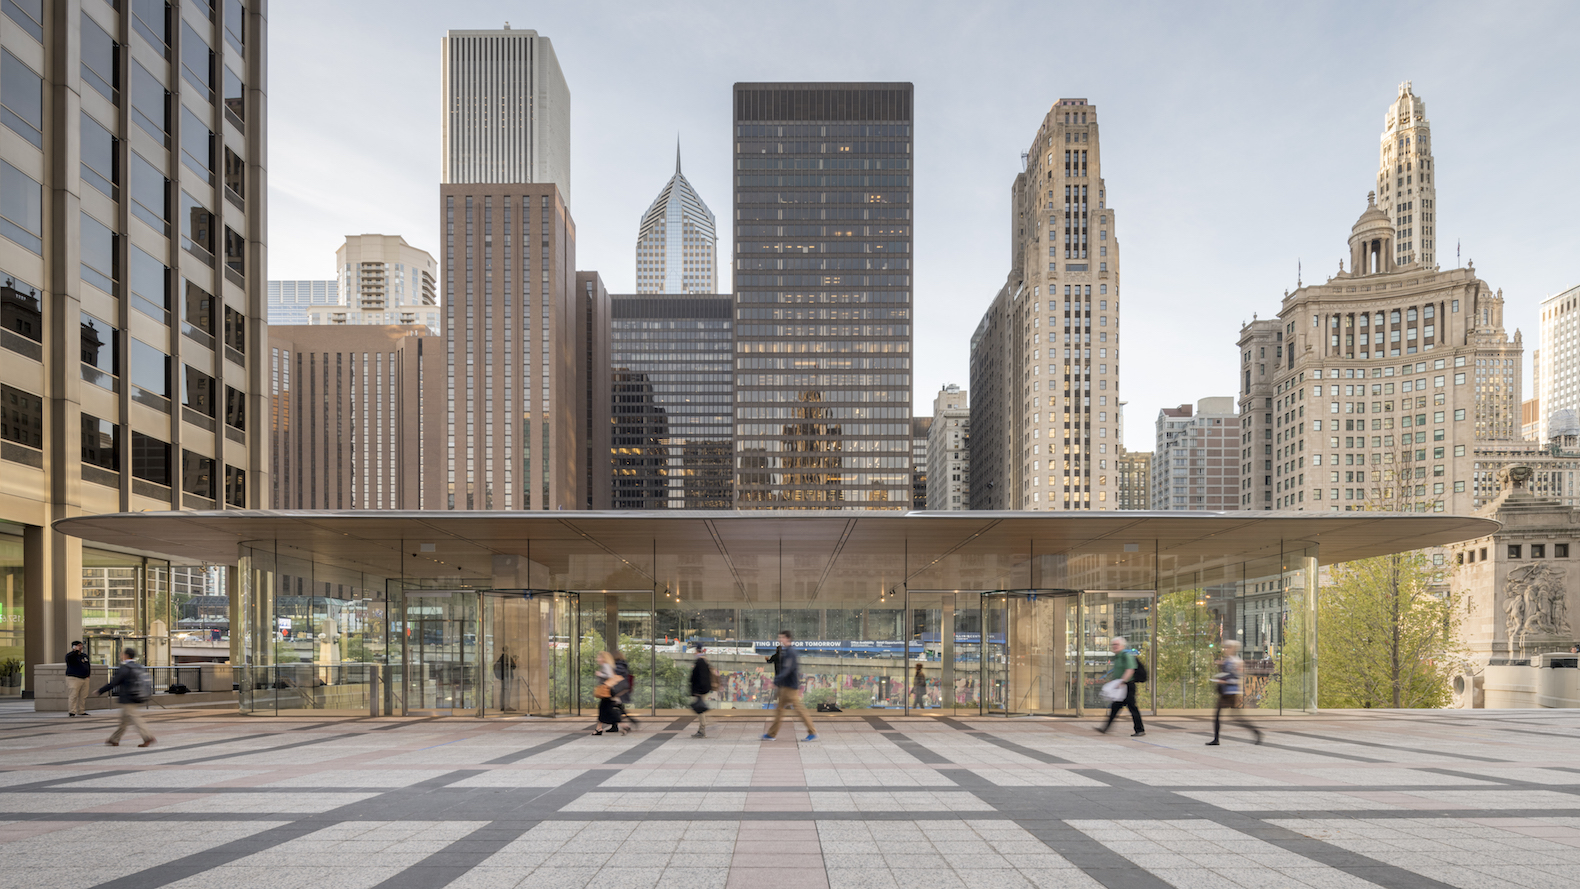 Ultra-thin Macbook-shaped roof tops new Apple Store in Chicago